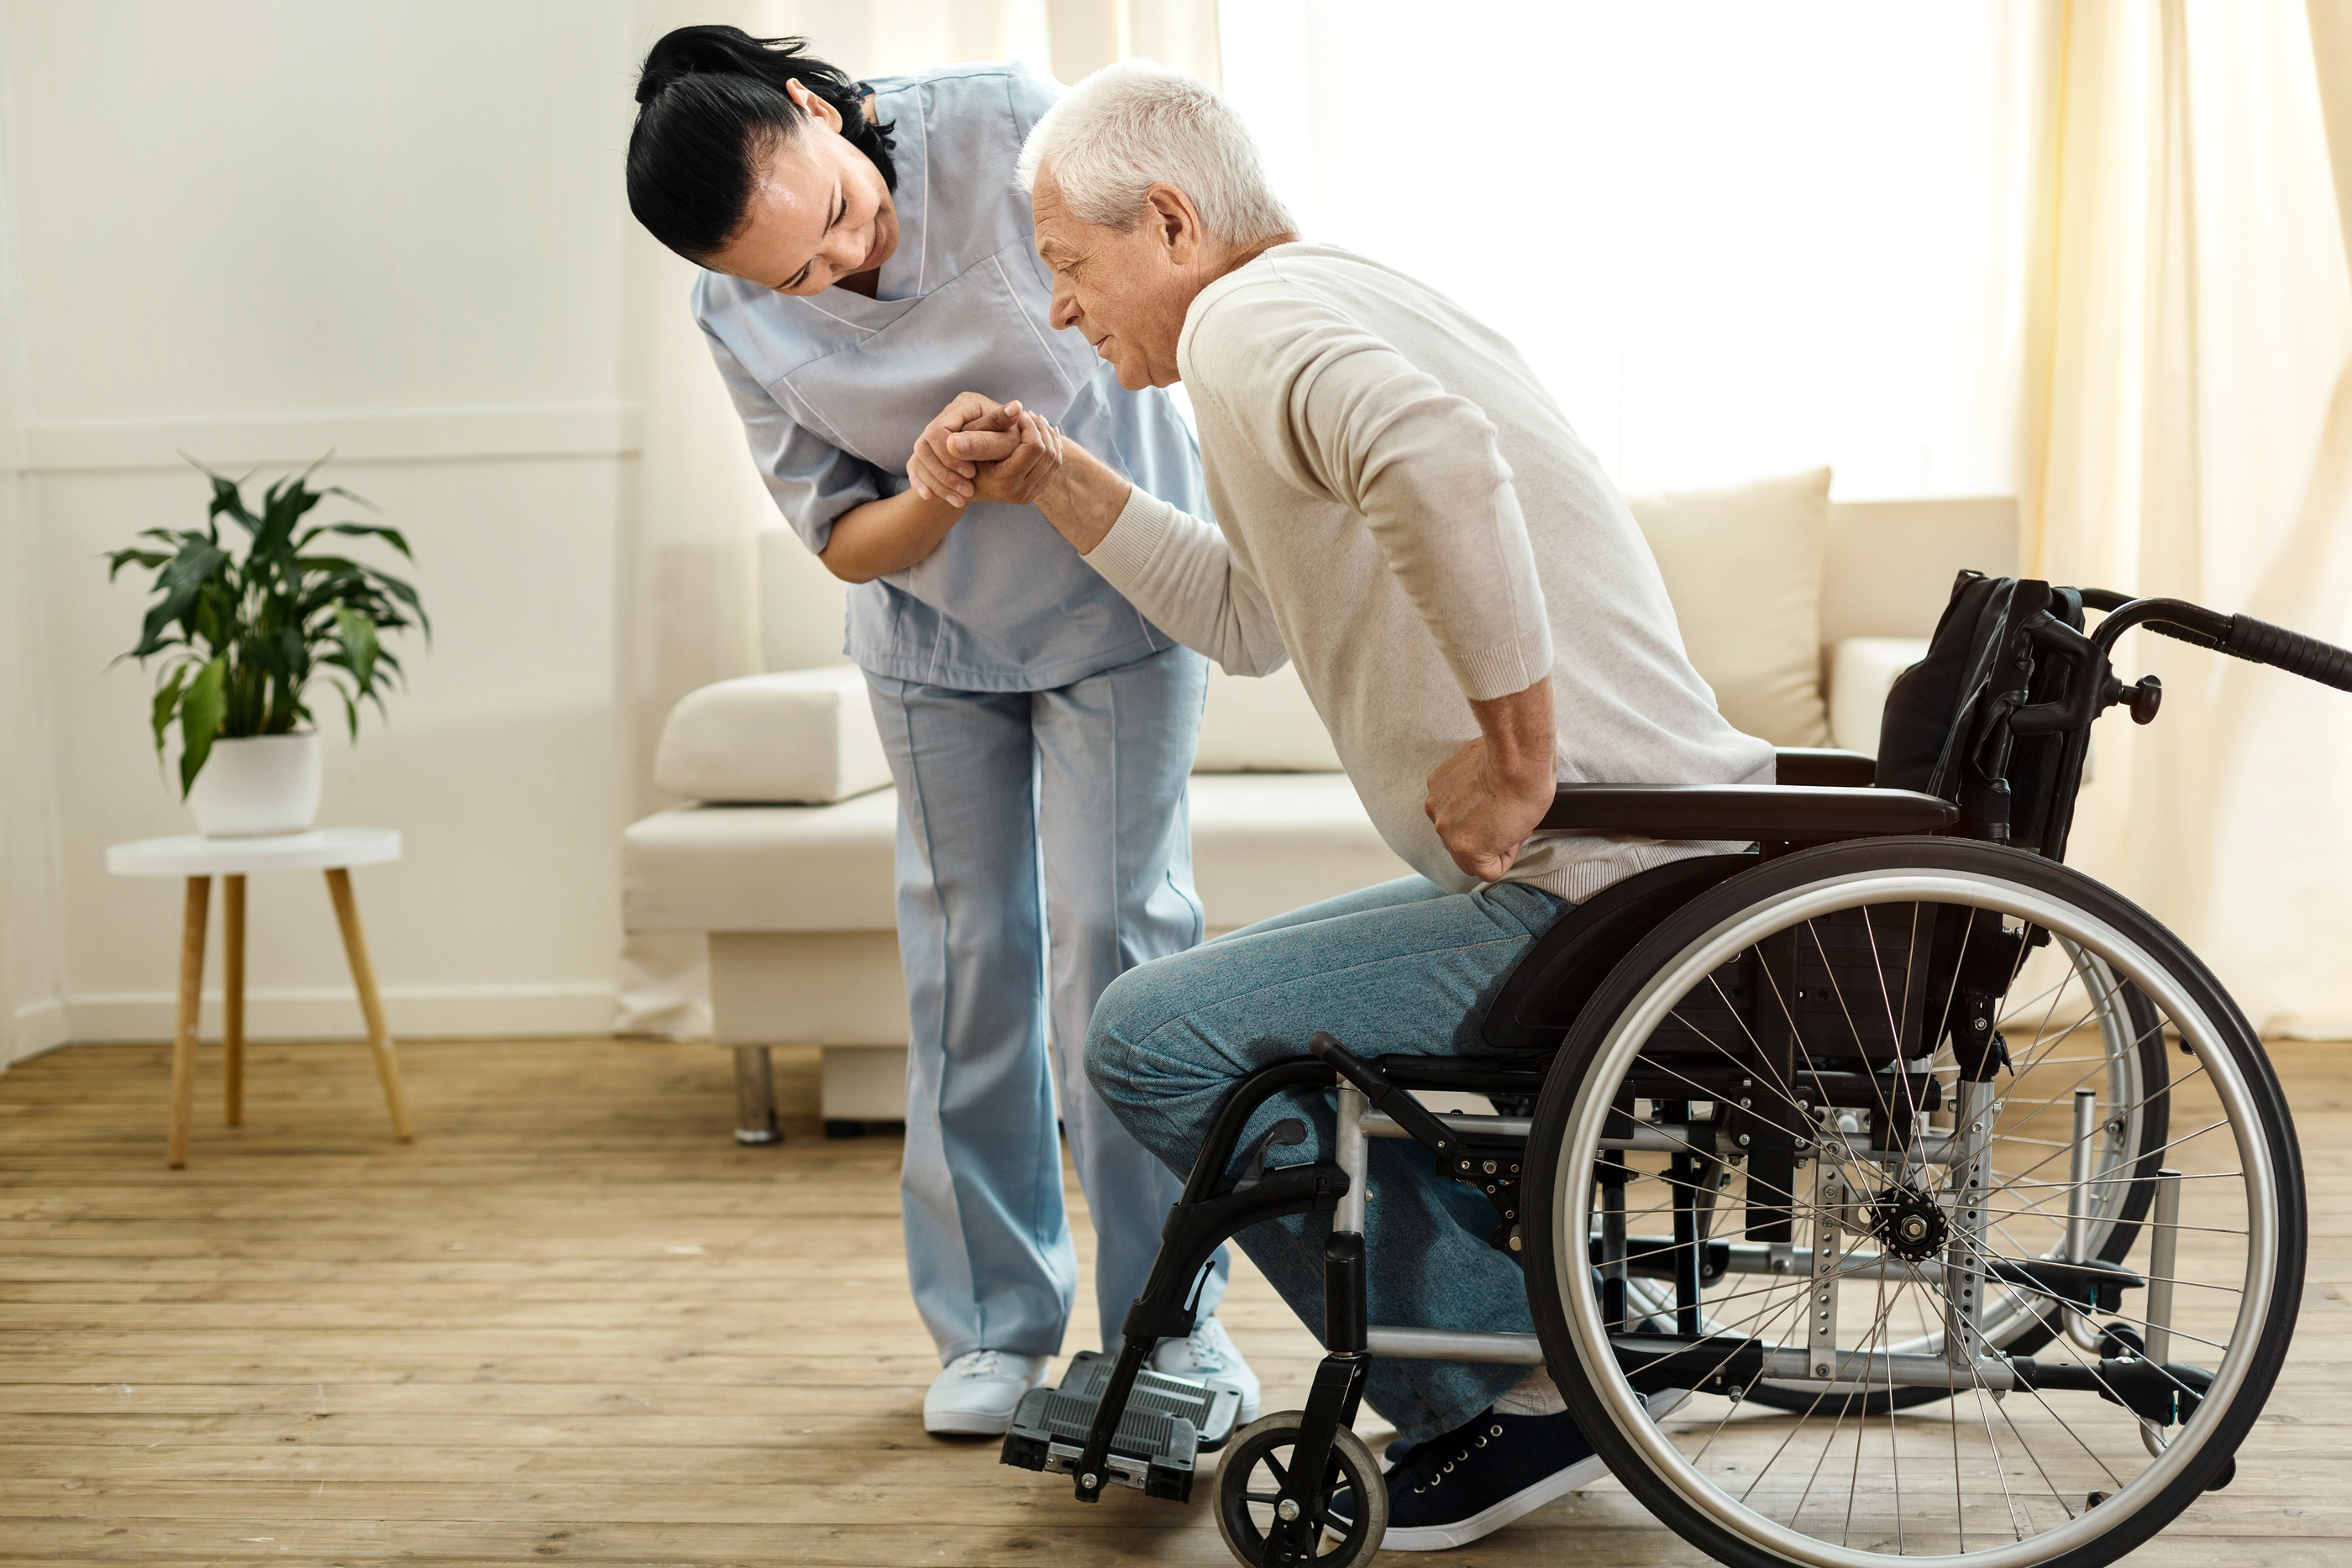 How to Safely Lift and Transfer Elderly Adults